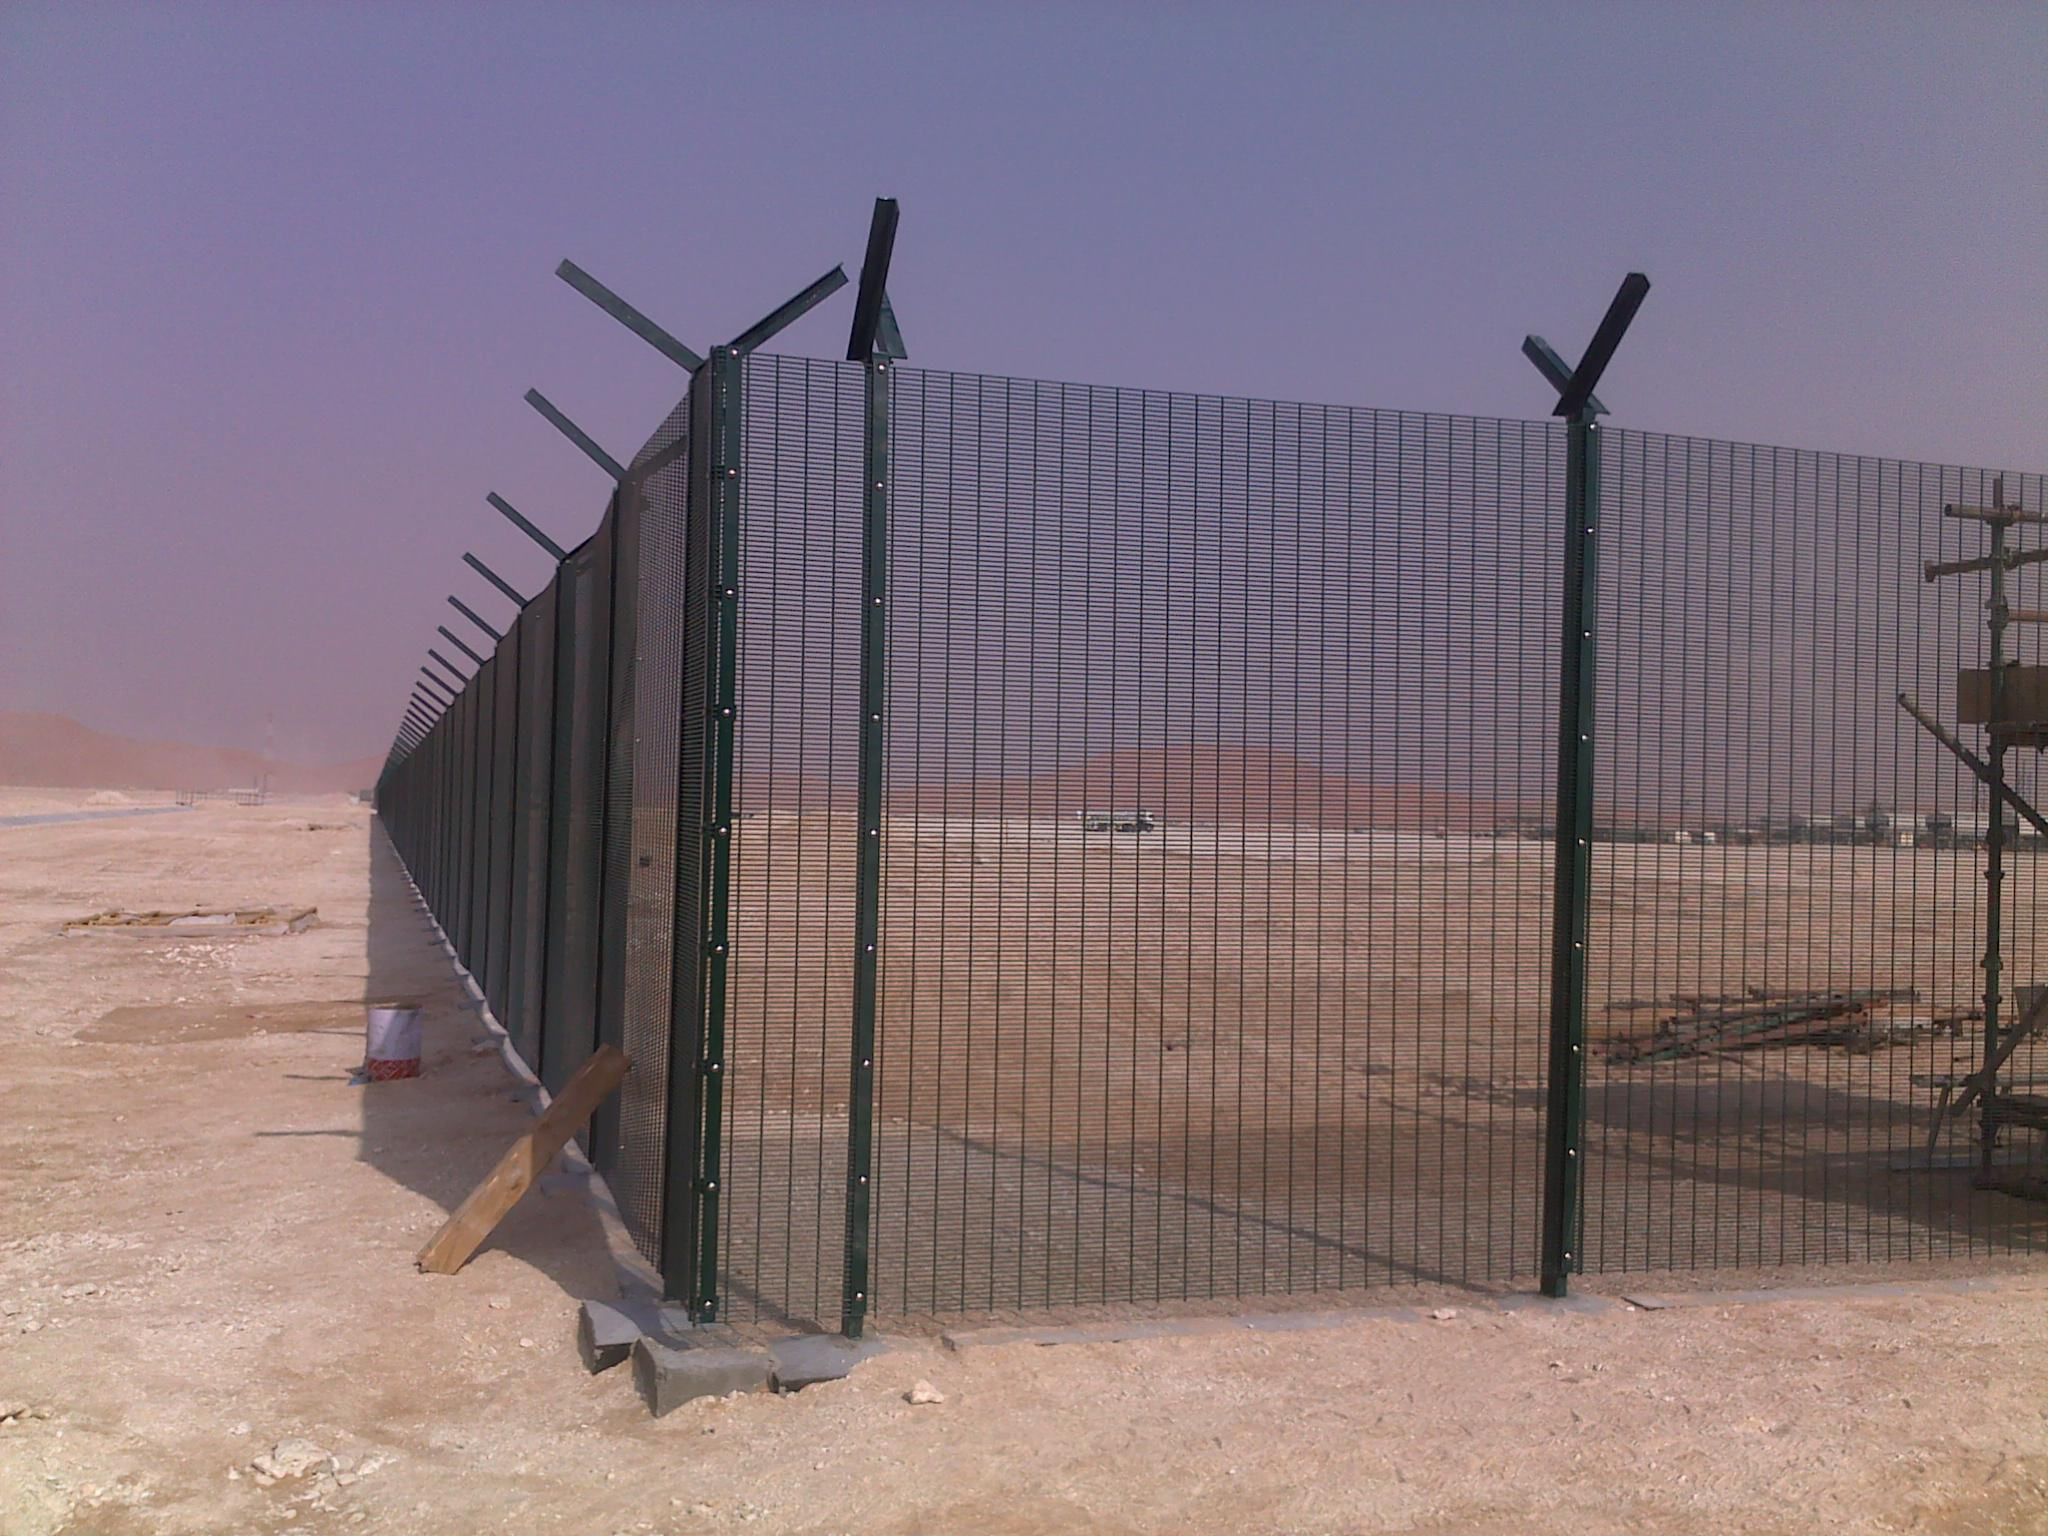 358 high security fence